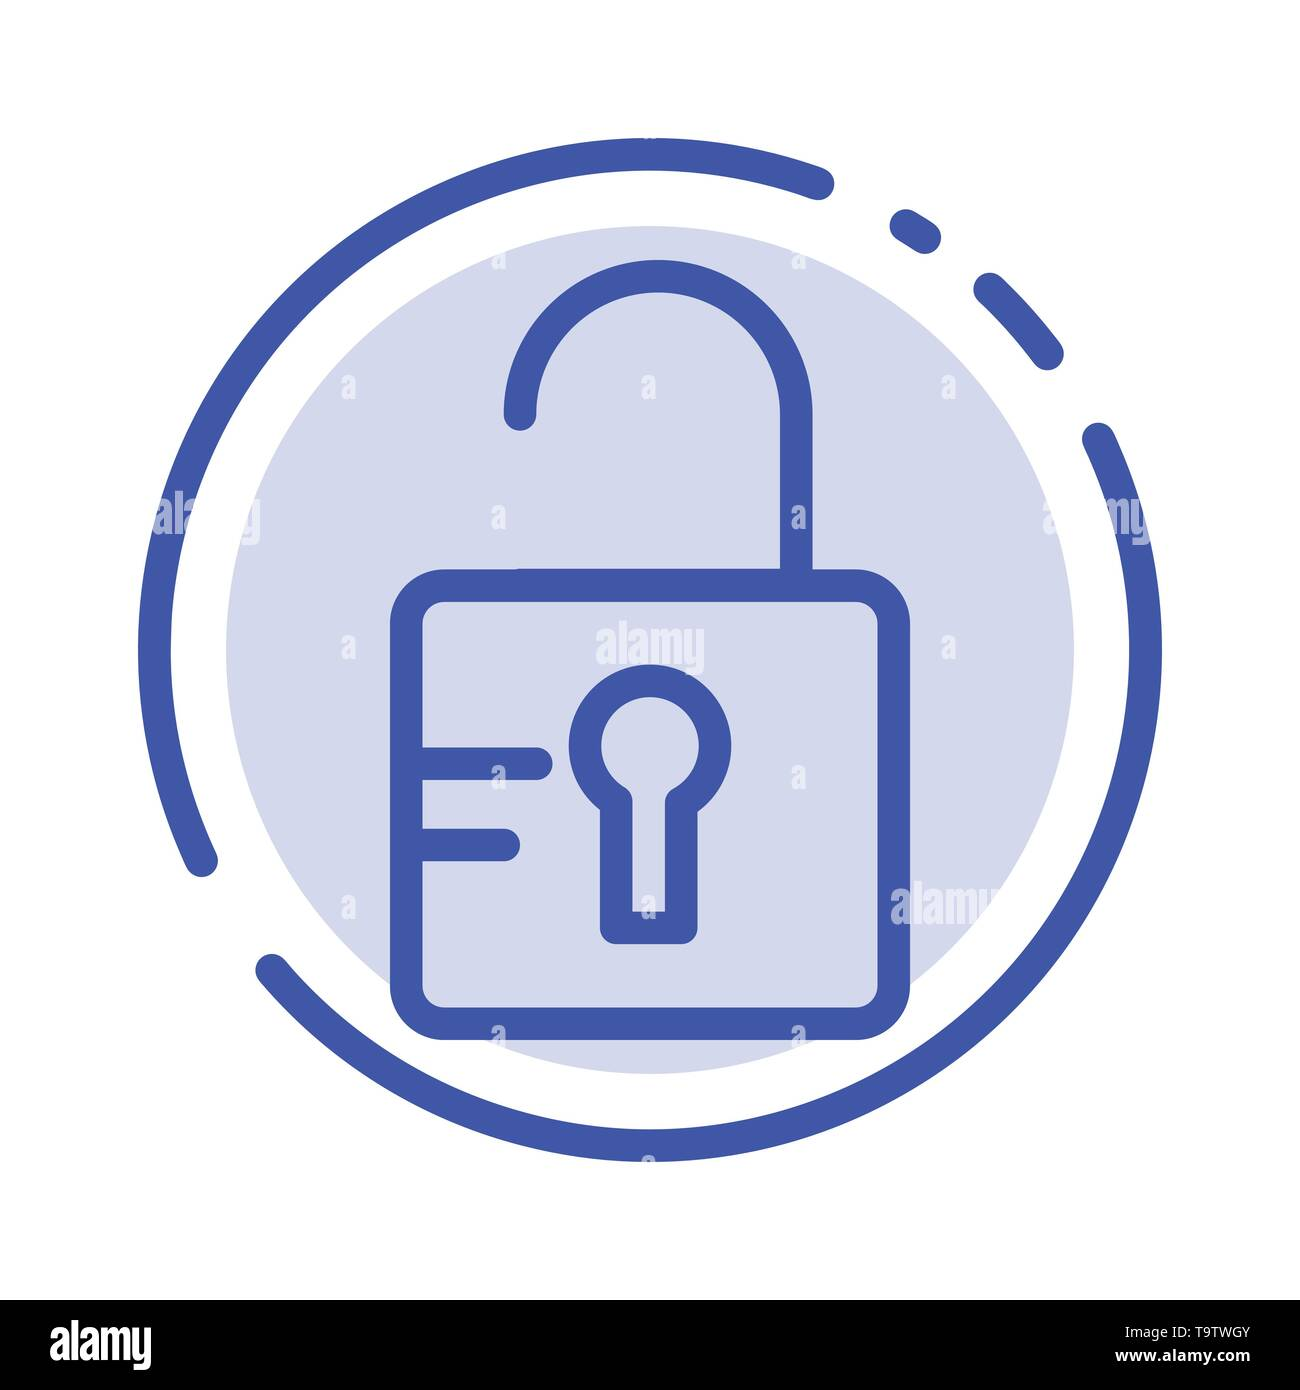 Unlock, Study, School Blue Dotted Line Line Icon - Stock Image